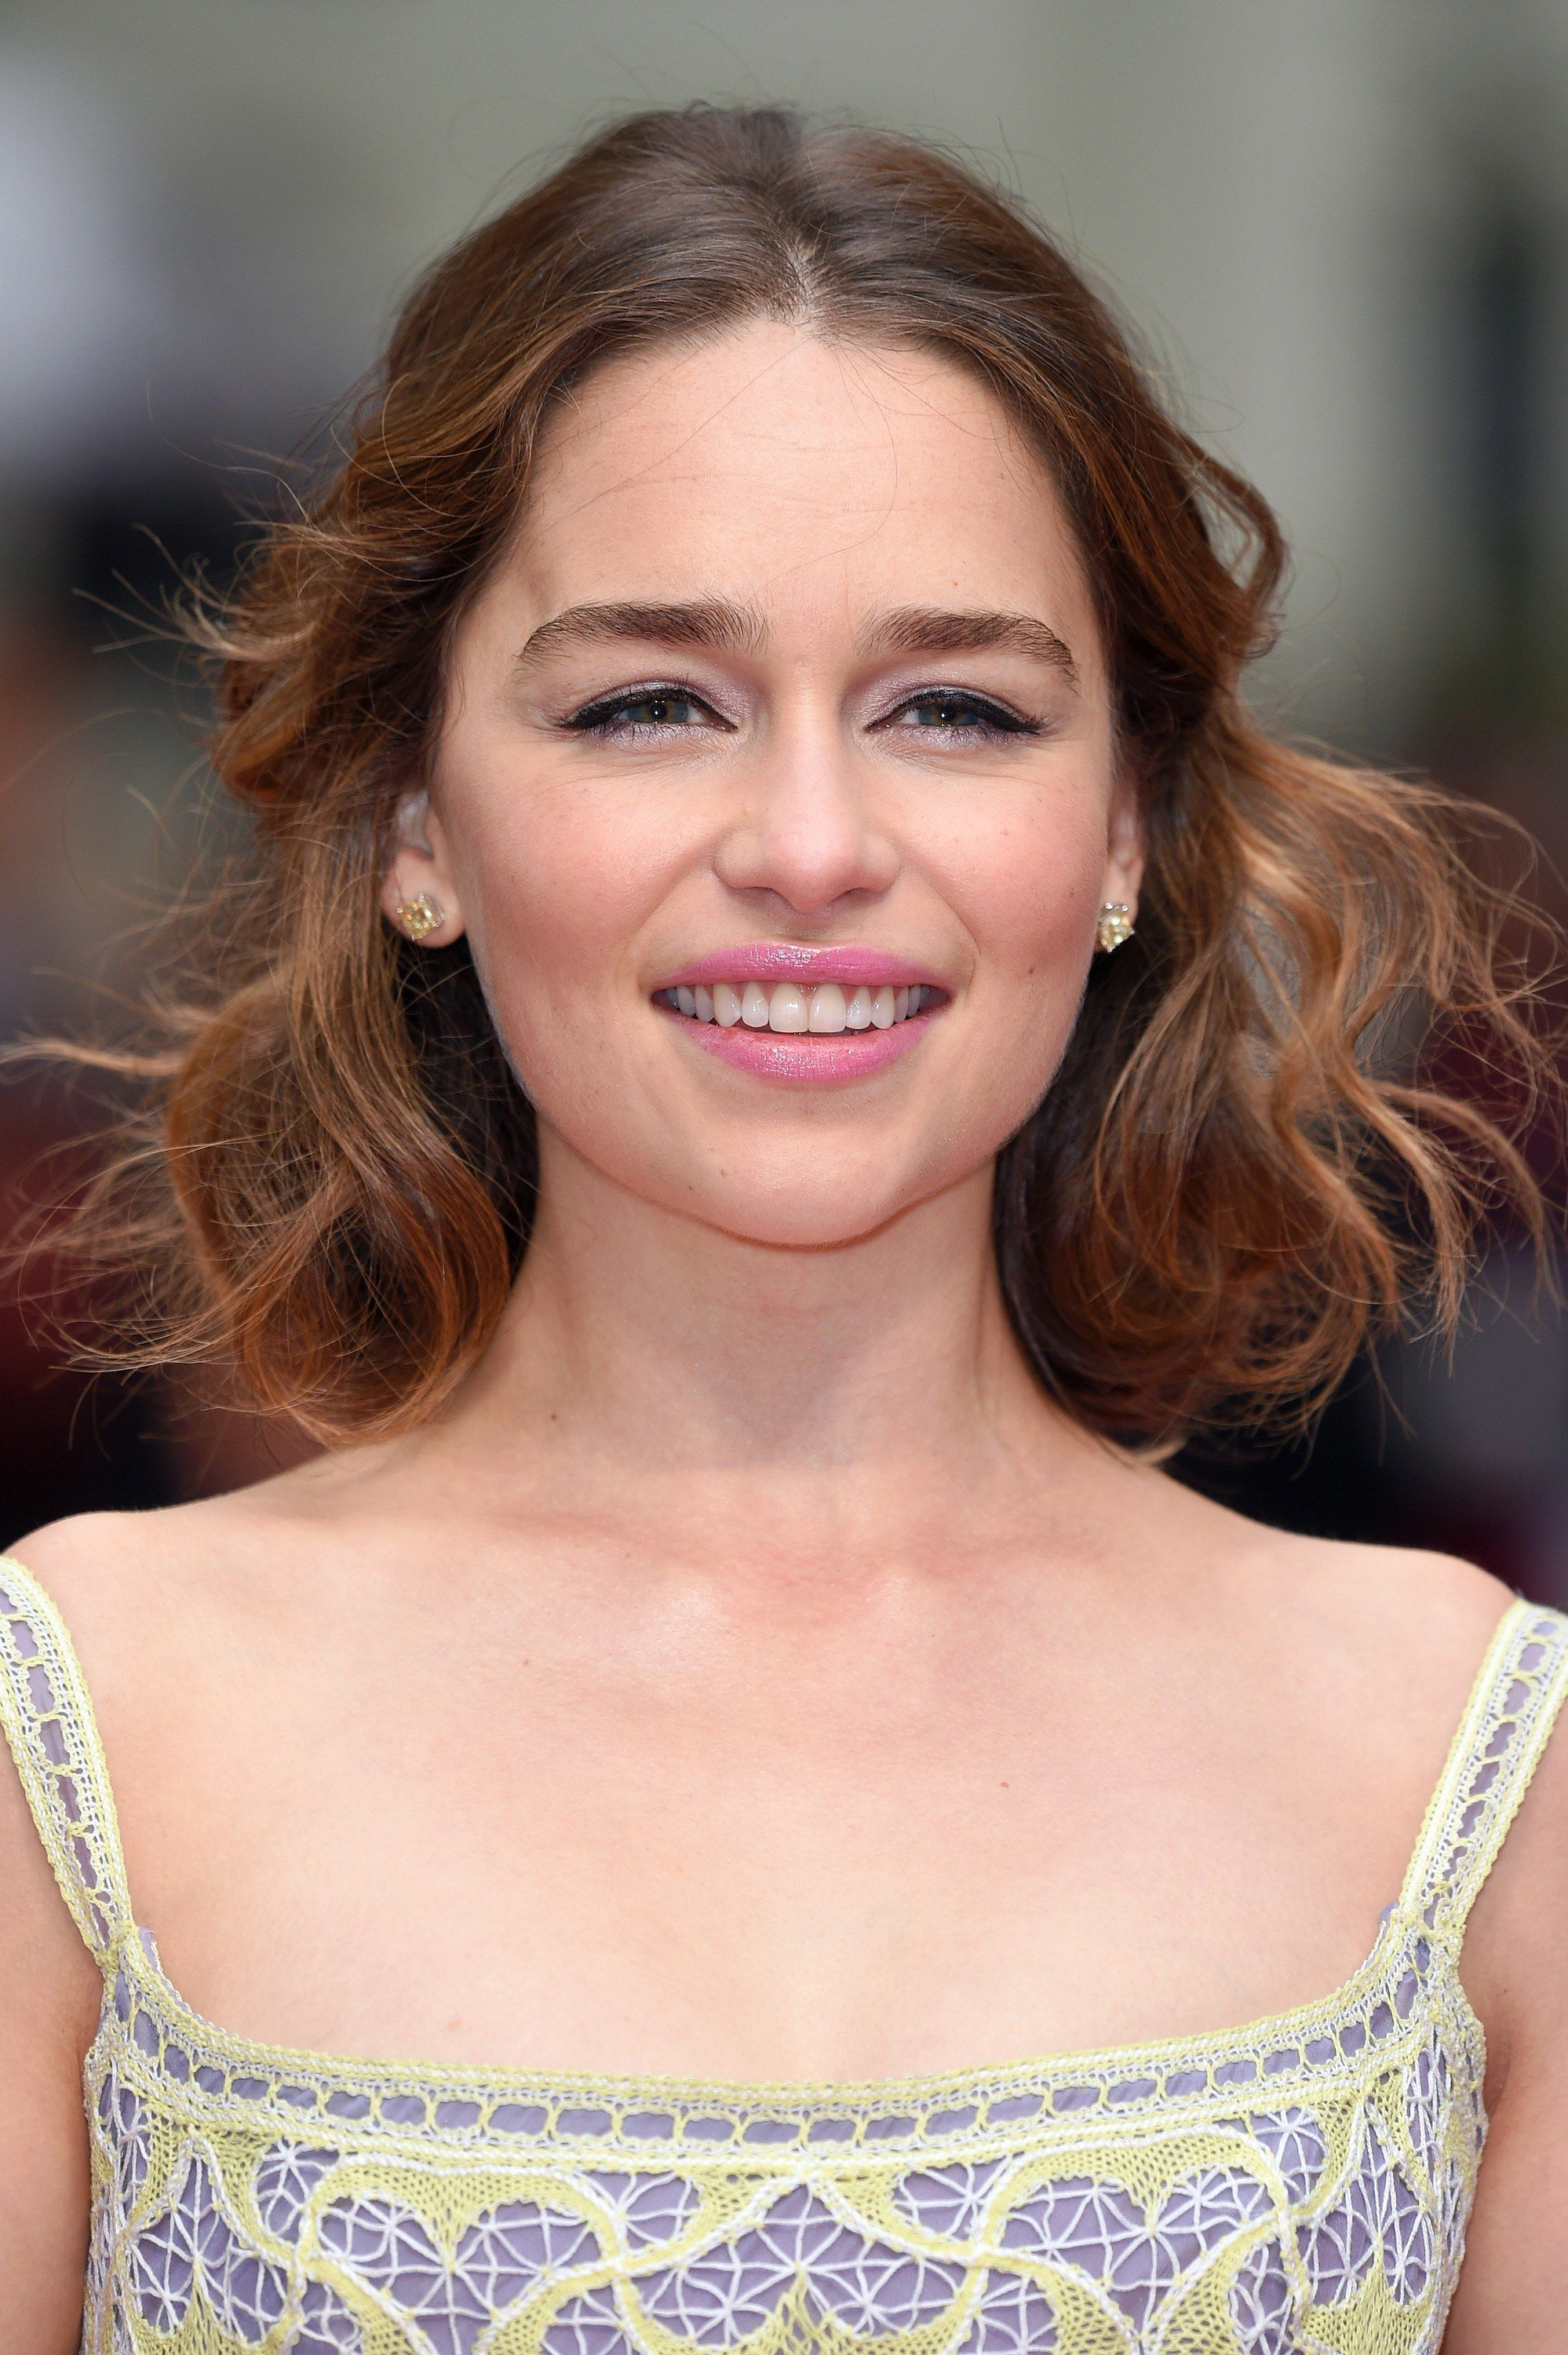 May 25: Me Before You Premiere in London - 0525 MBYLondonPremiere 0016 - Adoring Emilia Clarke - The Photo Gallery #emiliaclarke